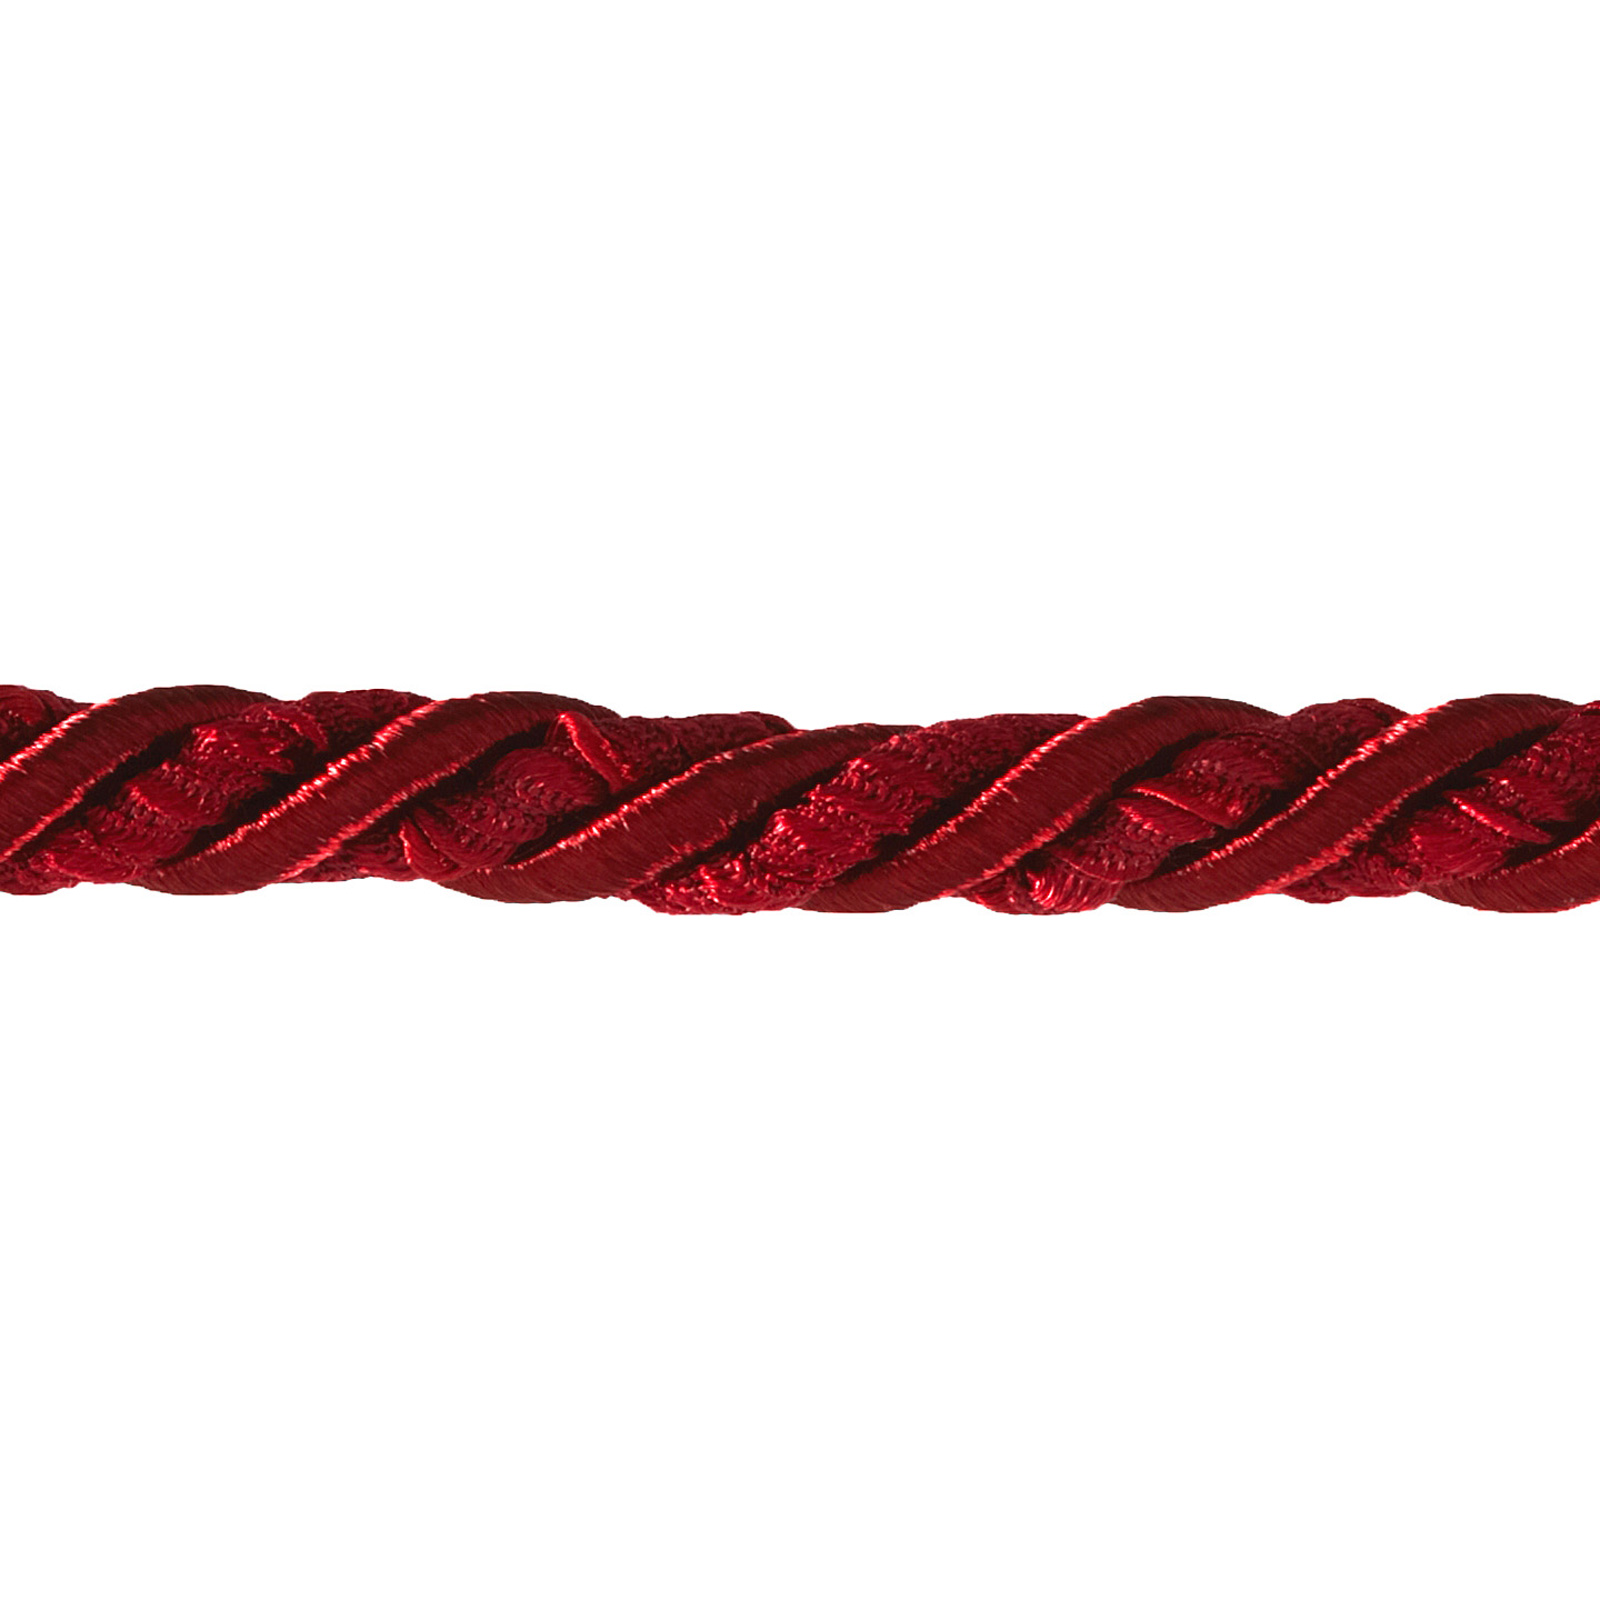 Lesley 5/16'' Decorative Cord Trim Berry